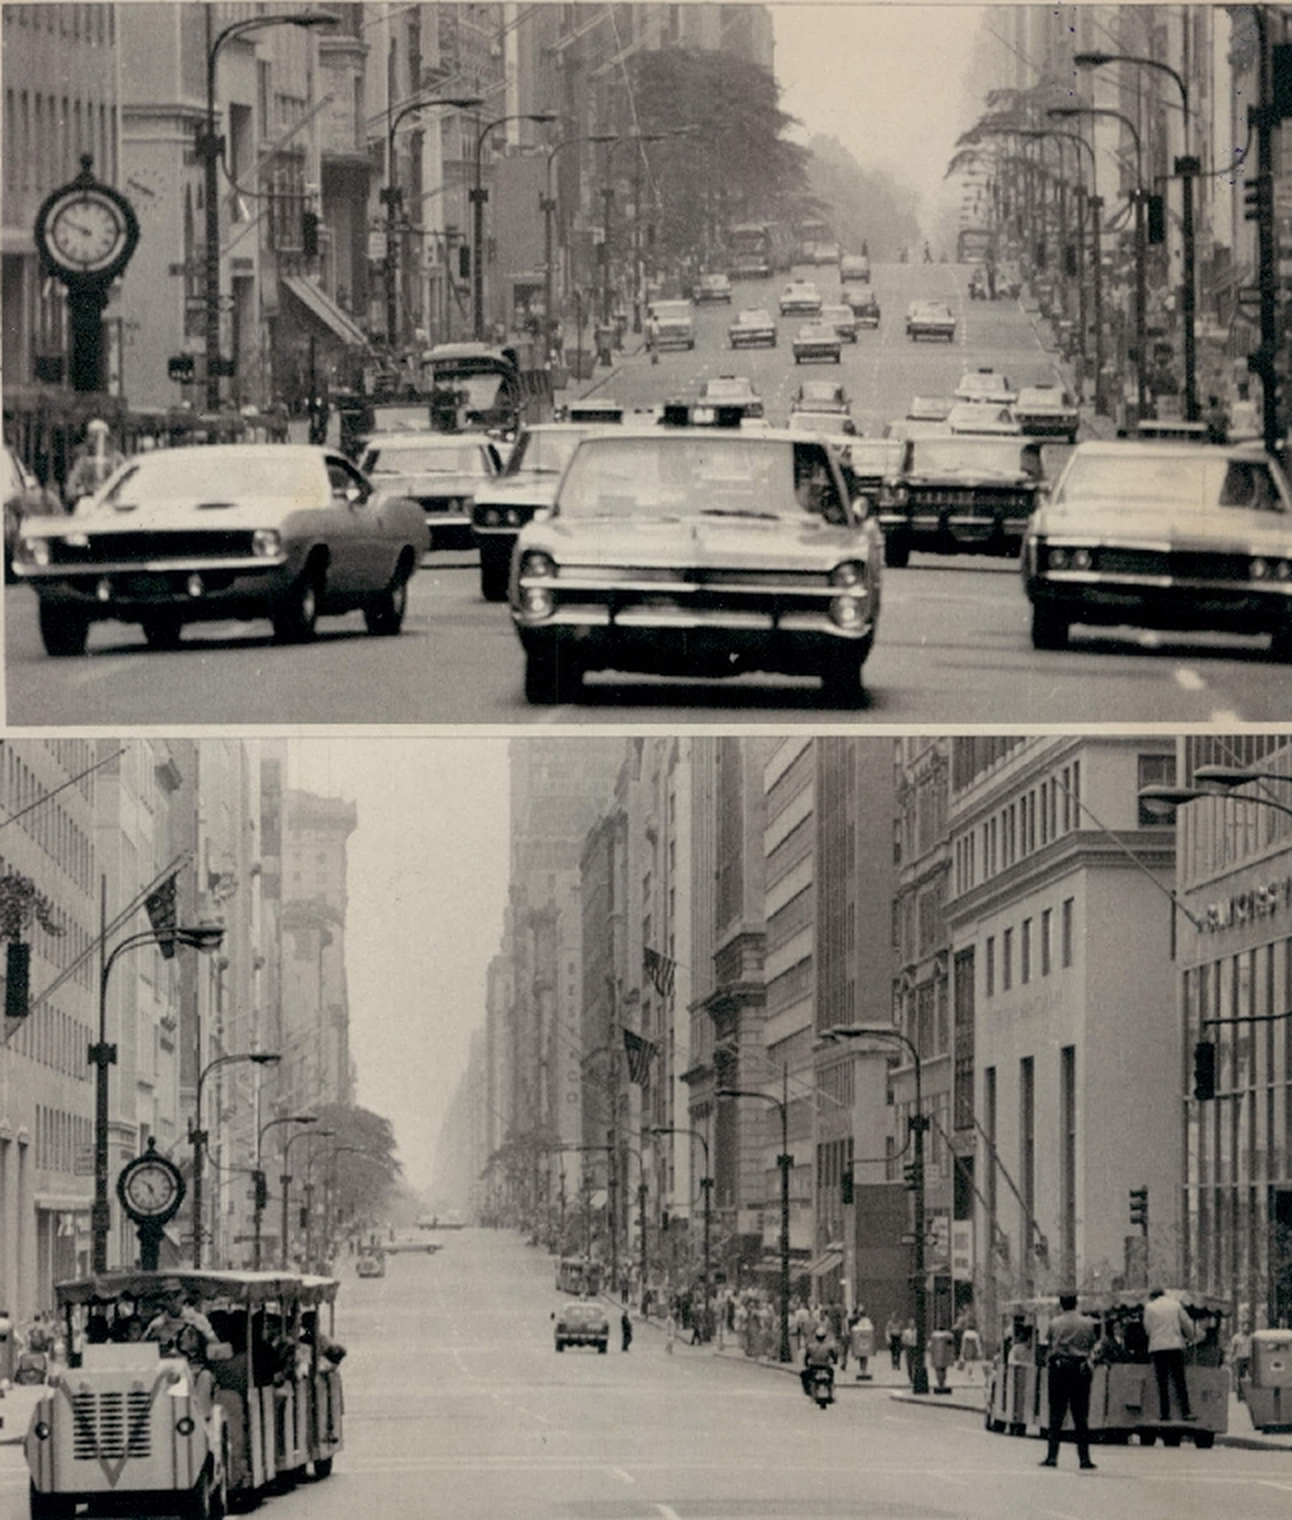 Banning Cars On City Streets In Manhattan – Not A New Idea